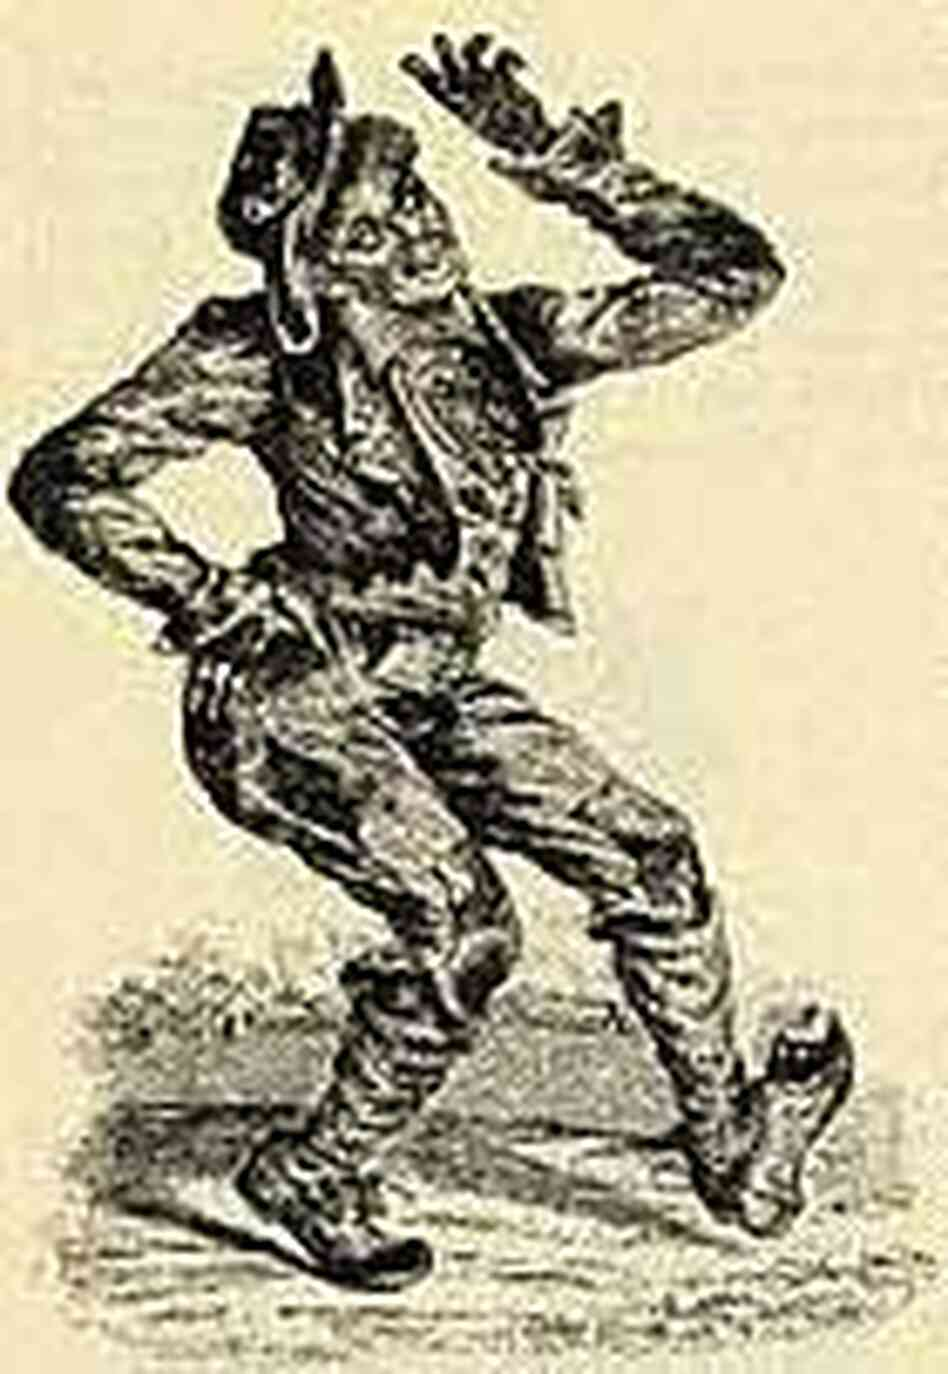 A woodcut print of famous white minstrel T.D. Rice